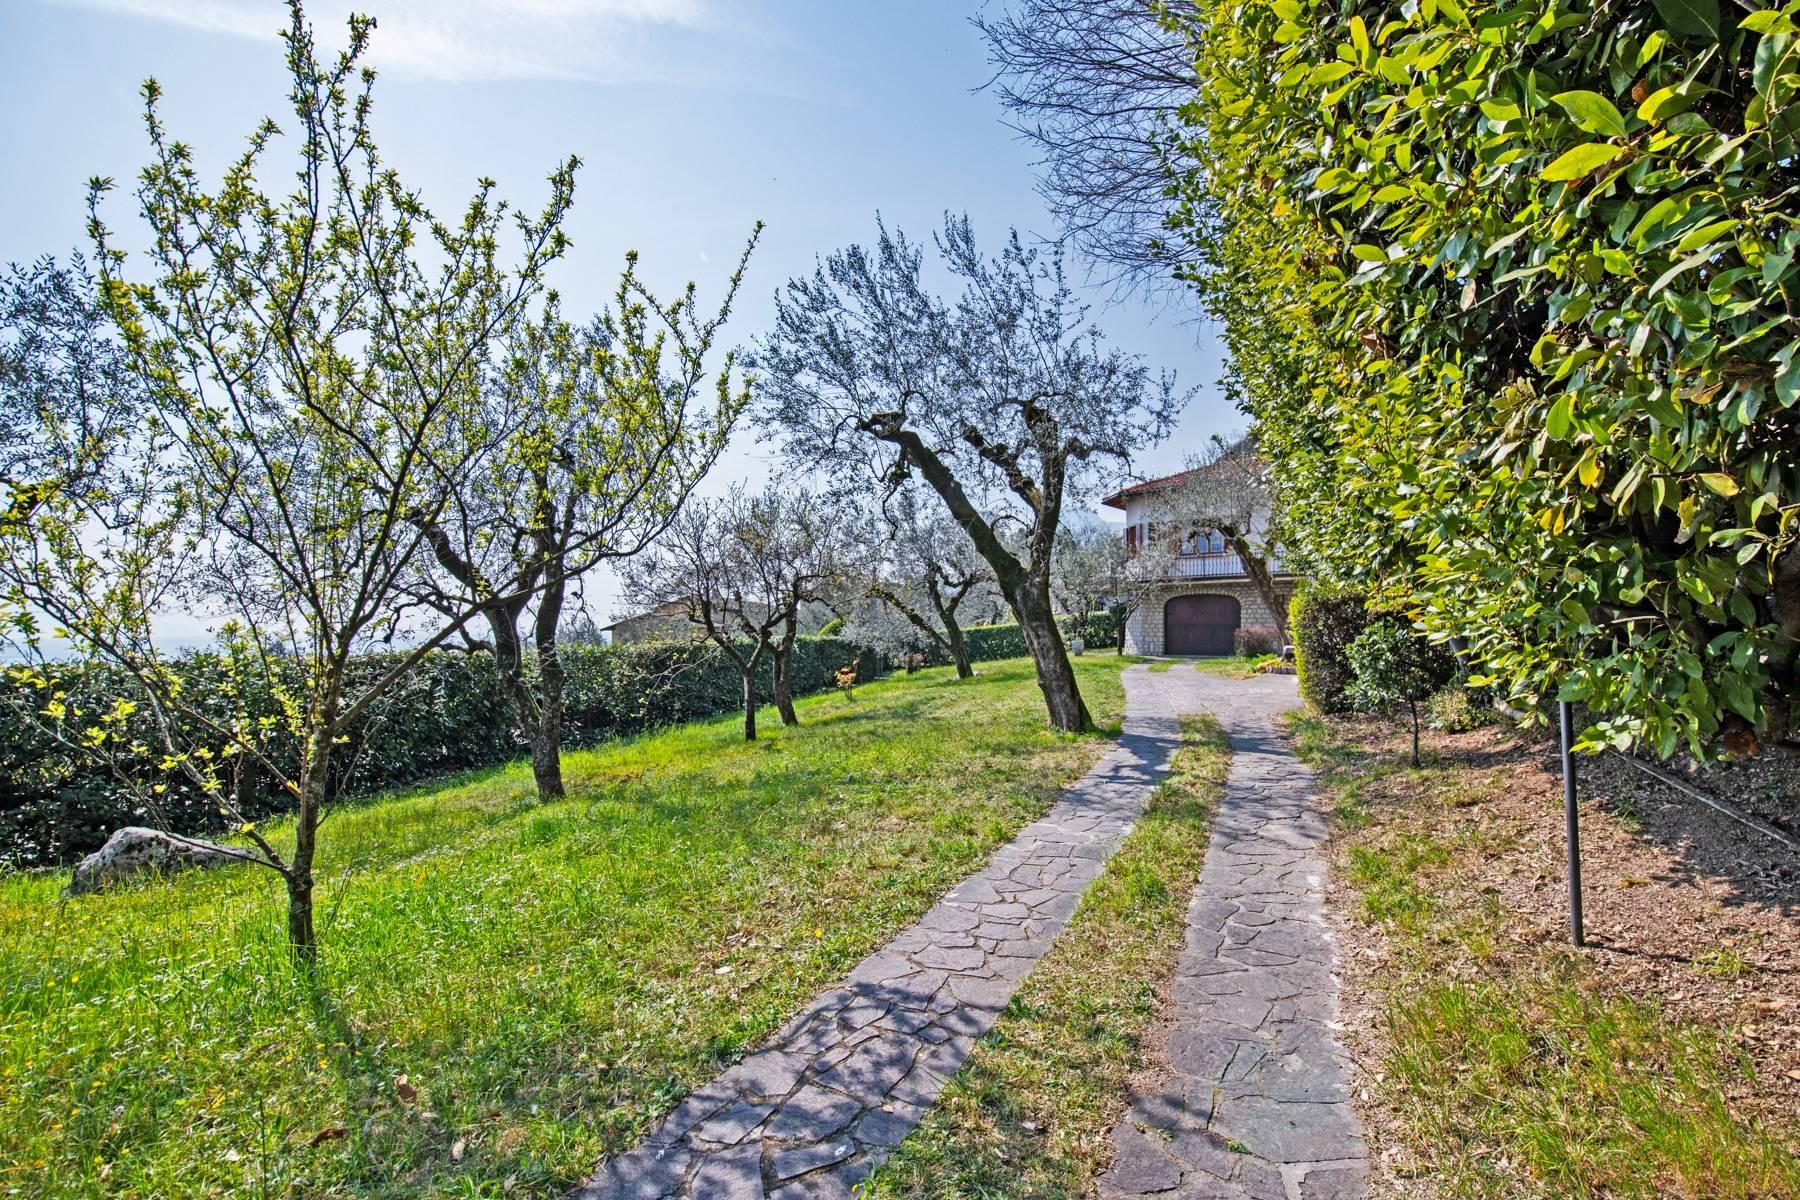 Villa with lake view in Gargnano surrounded by olive trees - 33